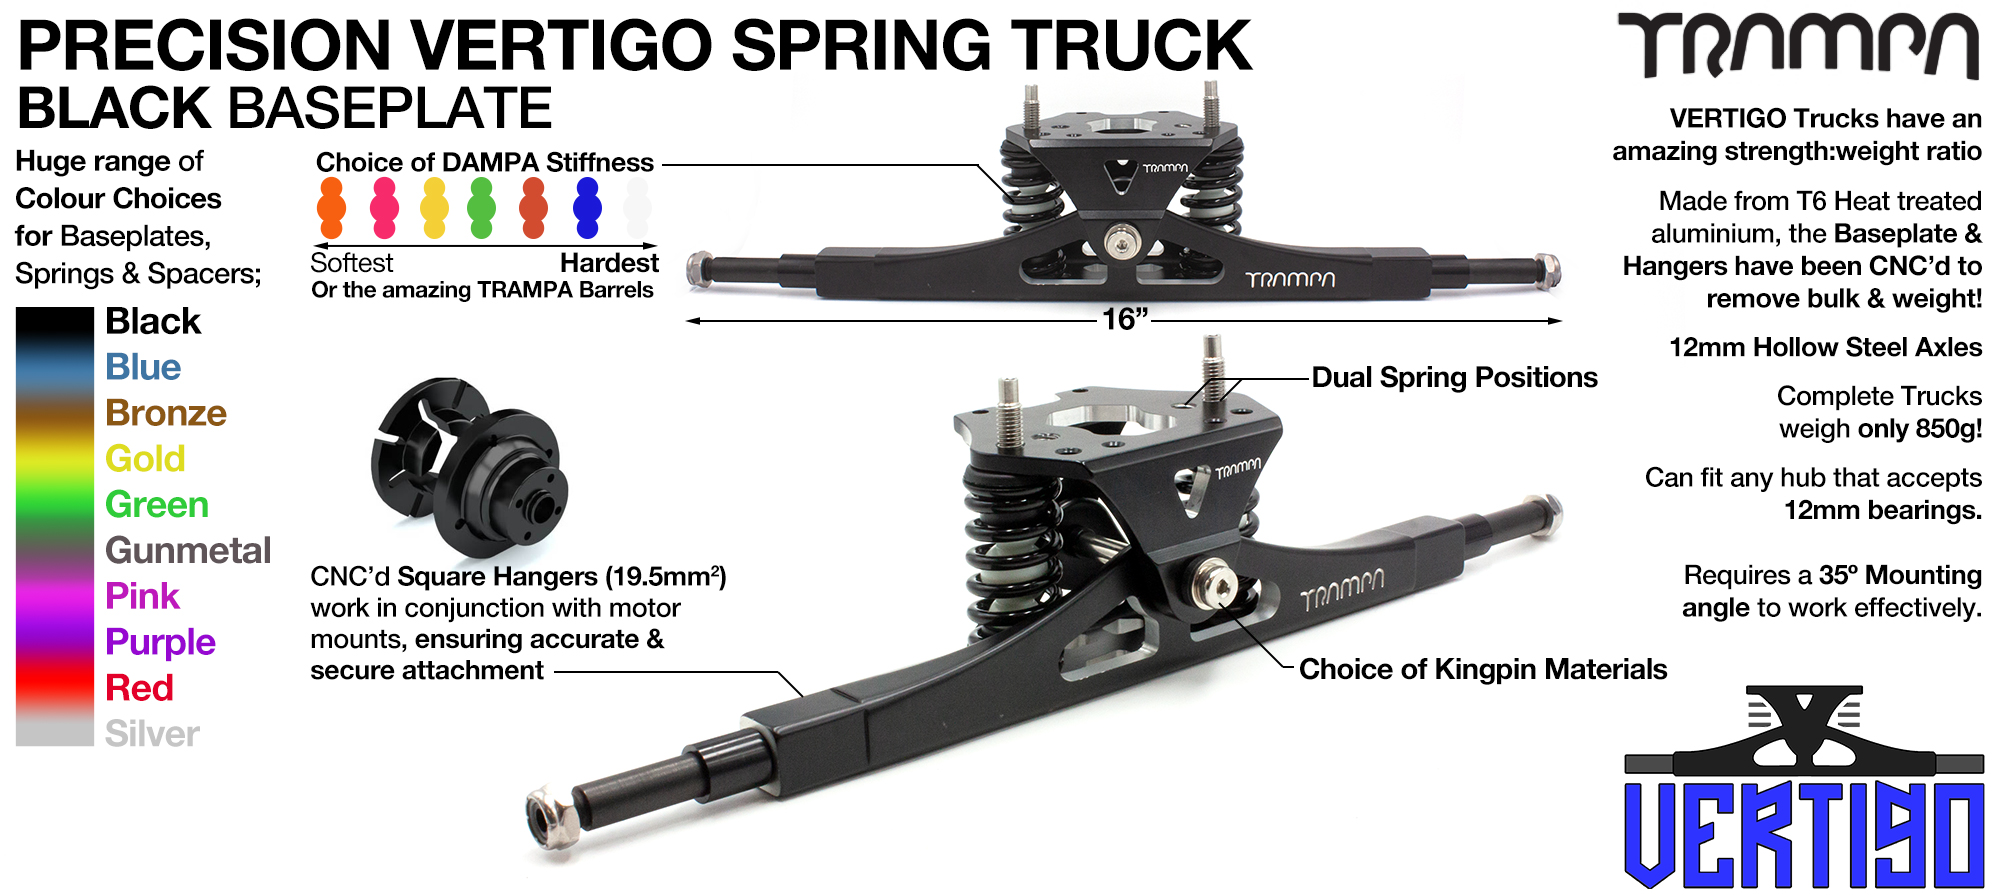 Vertigo Truck - 12mm HOLLOW Axles with Black CNC'd Baseplate & Steel Kingpin TRAMPA Spring Trucks